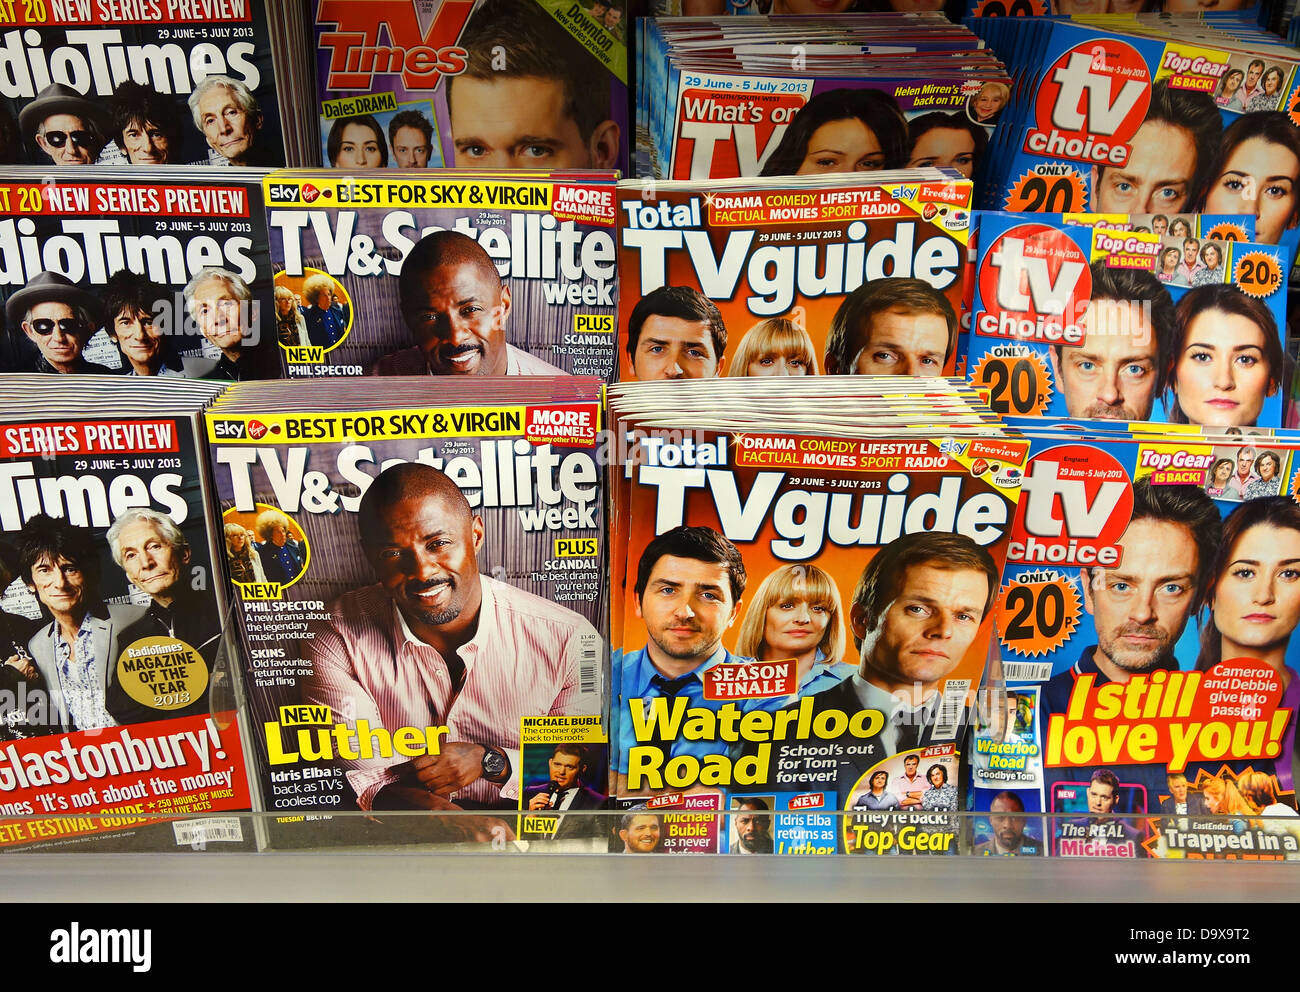 TV guides in a newsagents - Stock Image